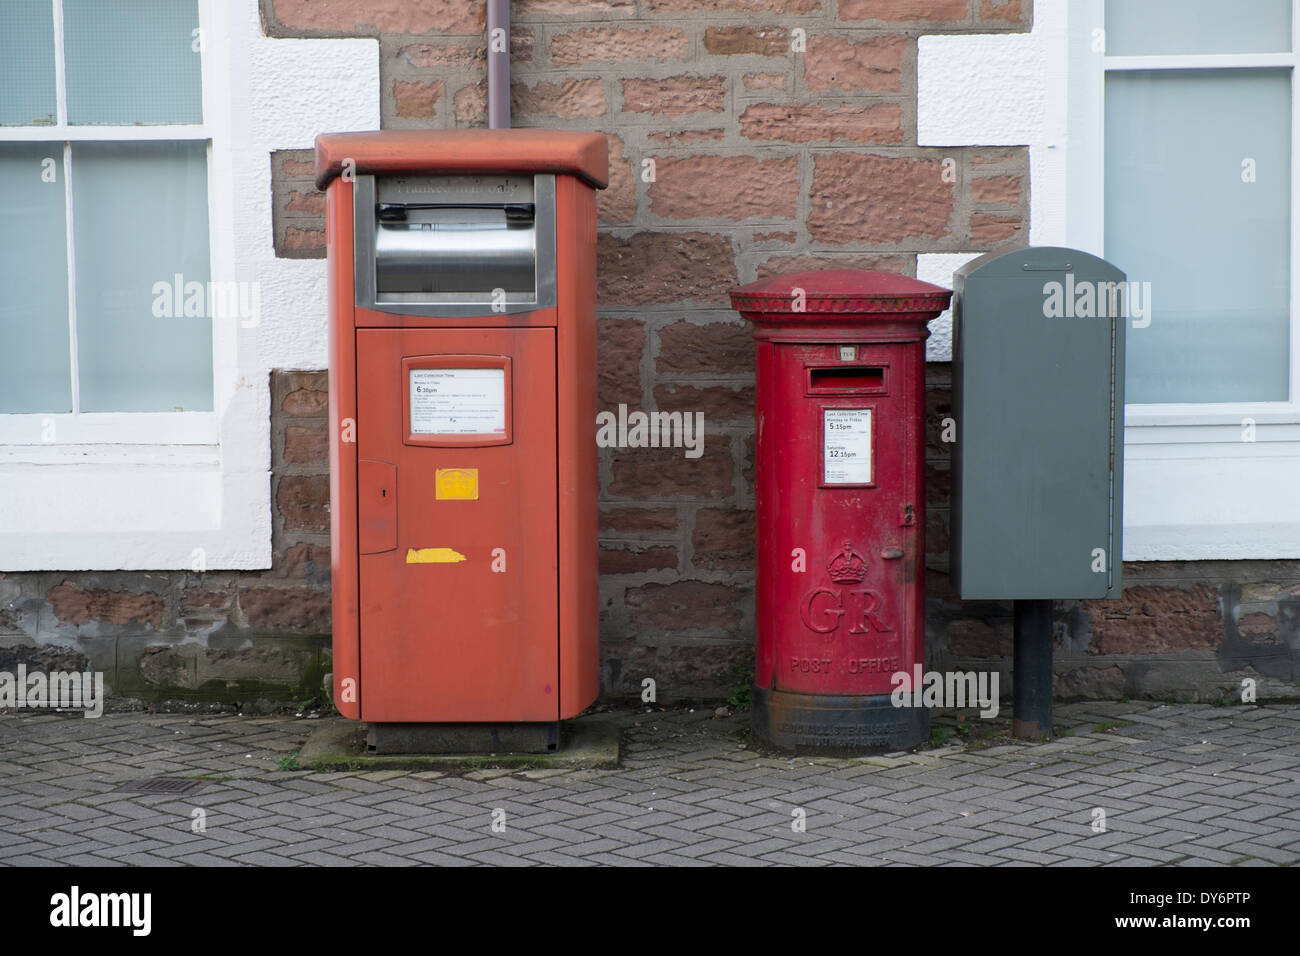 Post boxes on the corner of Montague Row, Inverness, Scotland - Stock Image